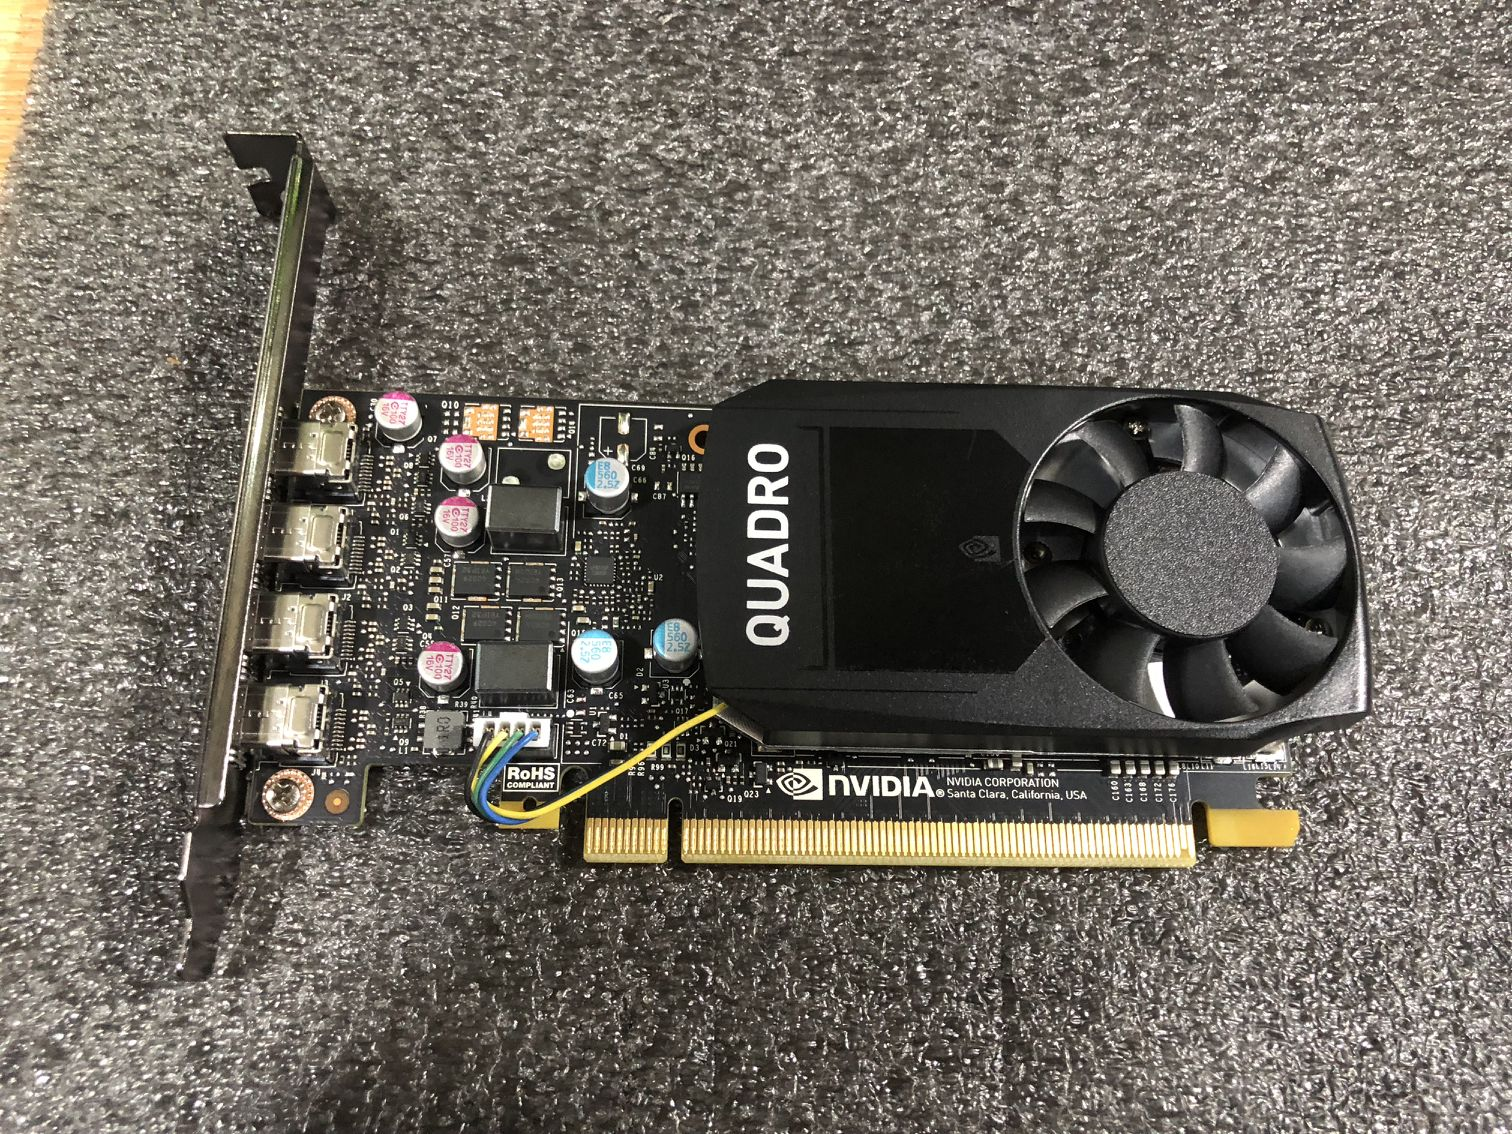 NVIDIA Quadro P620 / 2GB GDDR5/128-bit/ 80GB/s/CUDA Core 512/PCI-E3.0/Professional Graphics Used 90%new